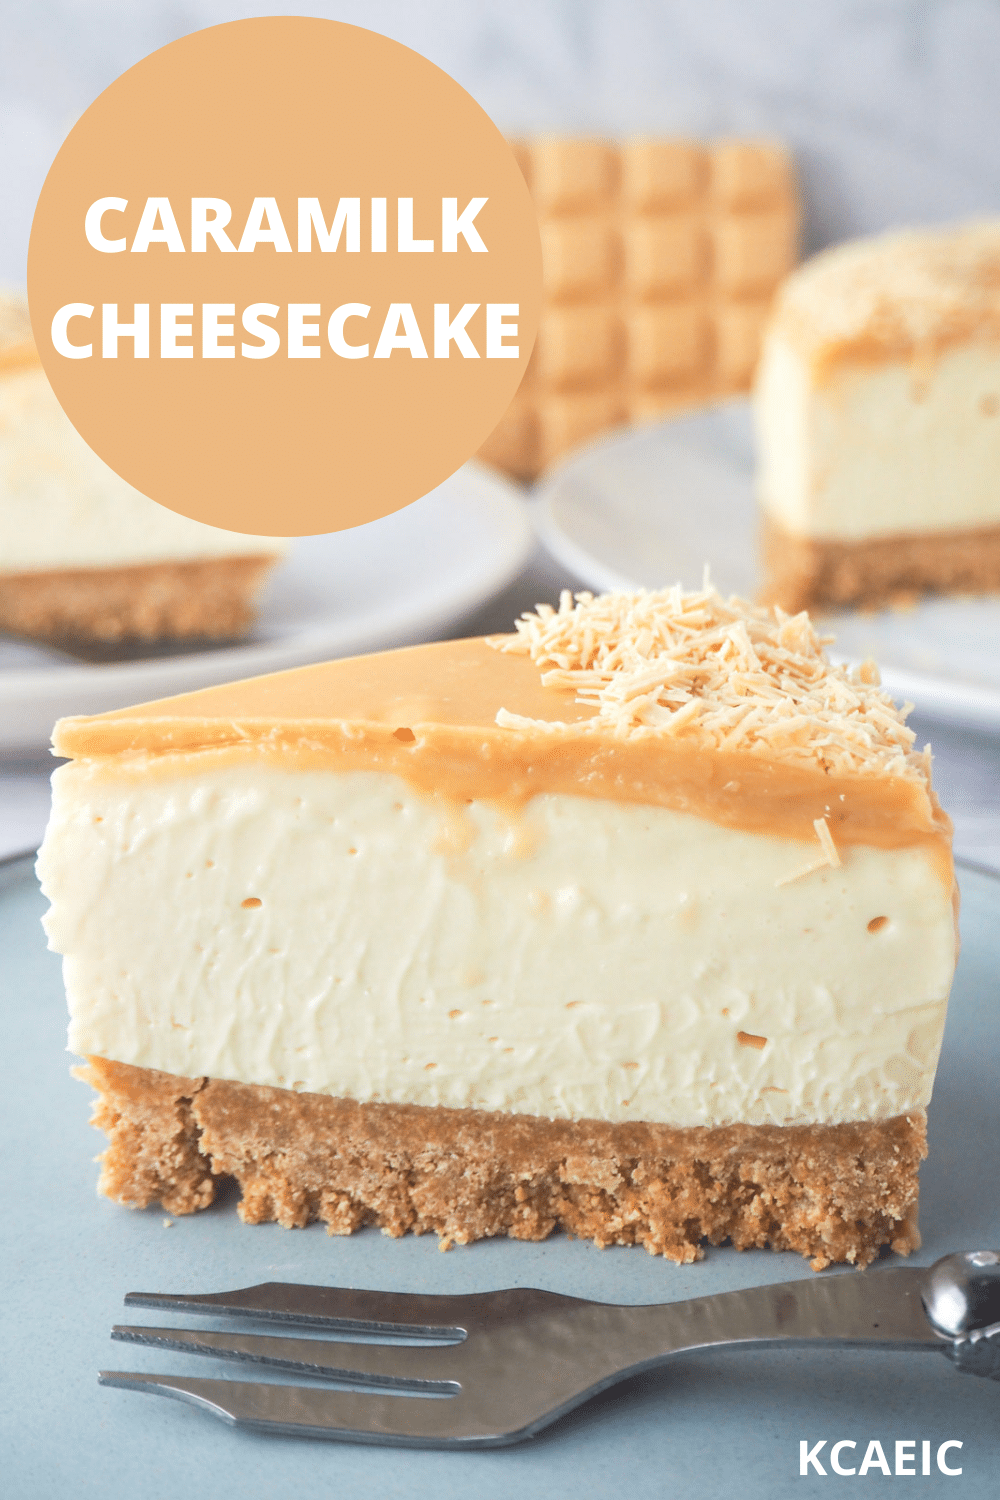 Slice of caramilk cheesecake on a plate with a fork, rest of cake, extra slice of cake and caramilk chocolate in the background, and text overlay, caramilk cheesecake, KCAEIC.